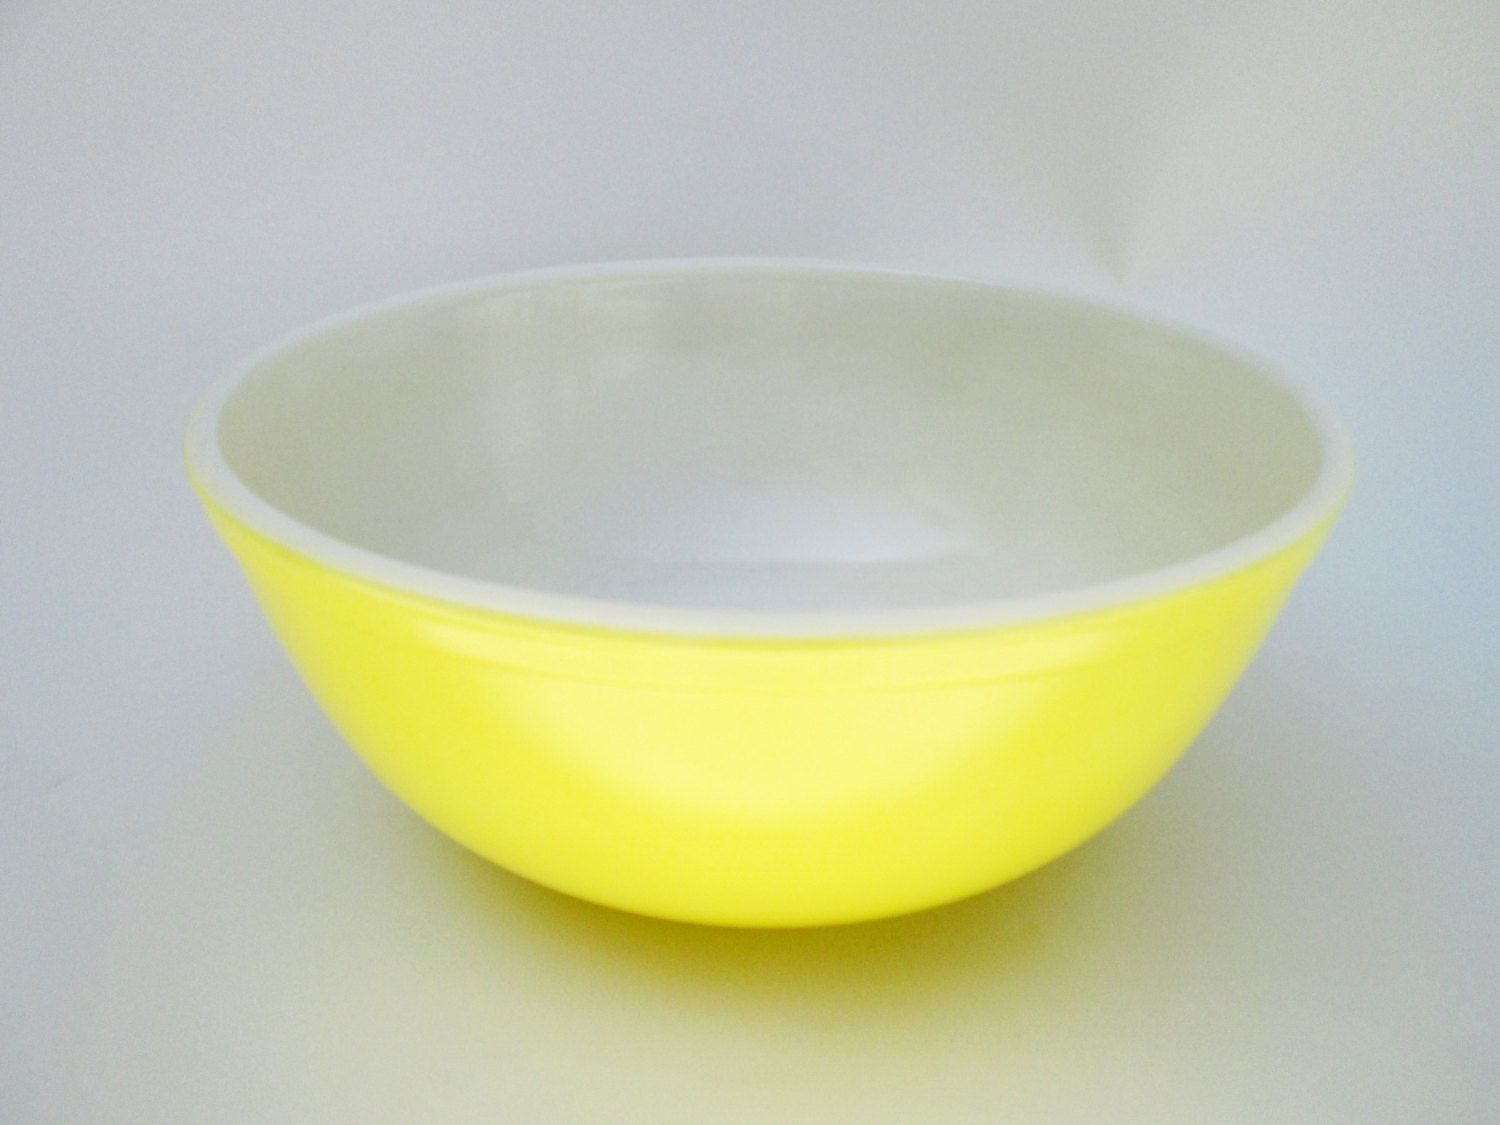 from Kenny dating pyrex primary bowls